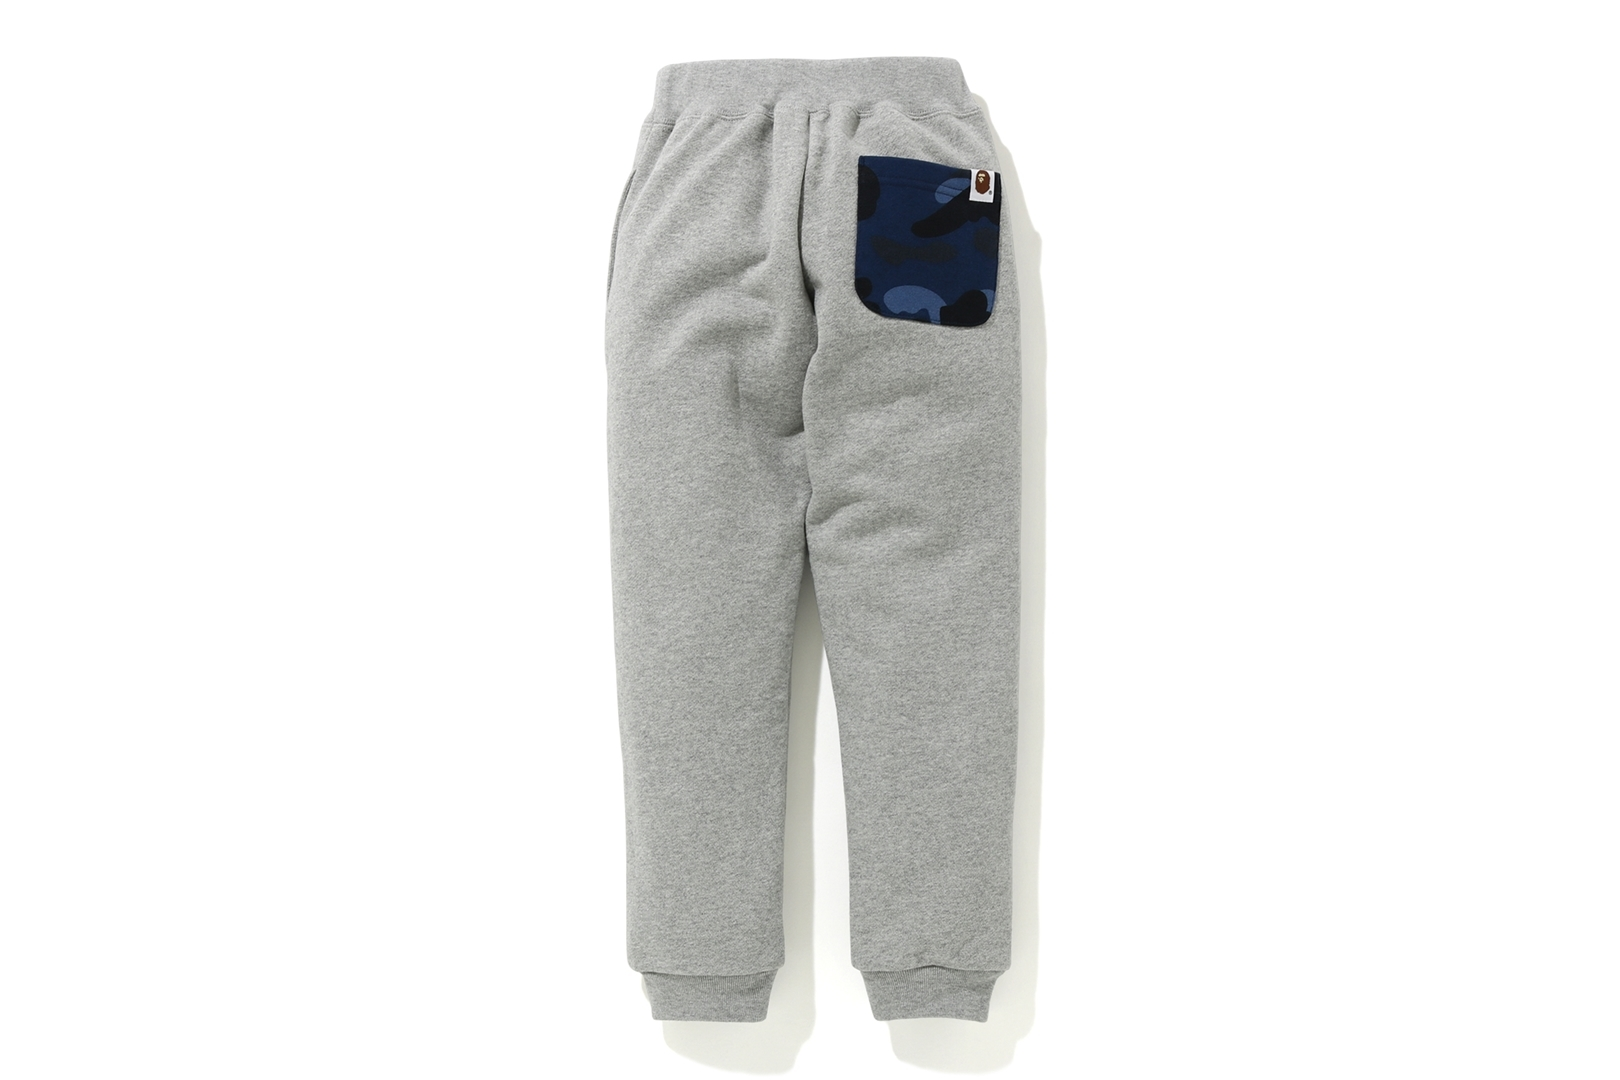 SHARK SLIM SWEAT PANTS_a0174495_12134600.jpg